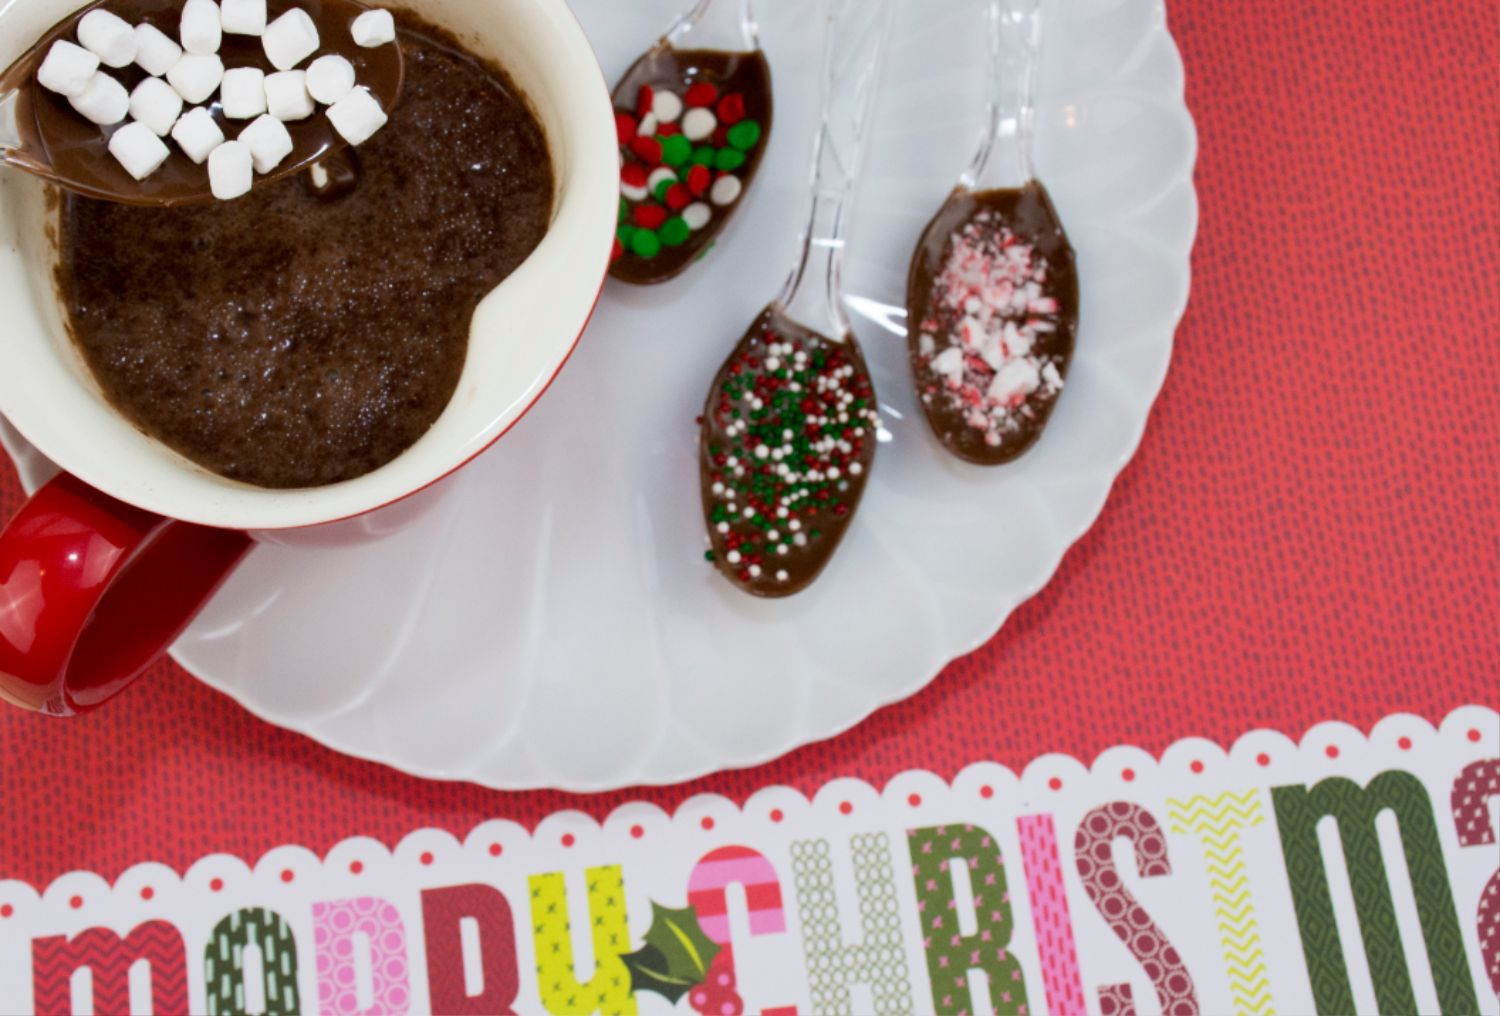 Decorative Hot Cocoa Spoons